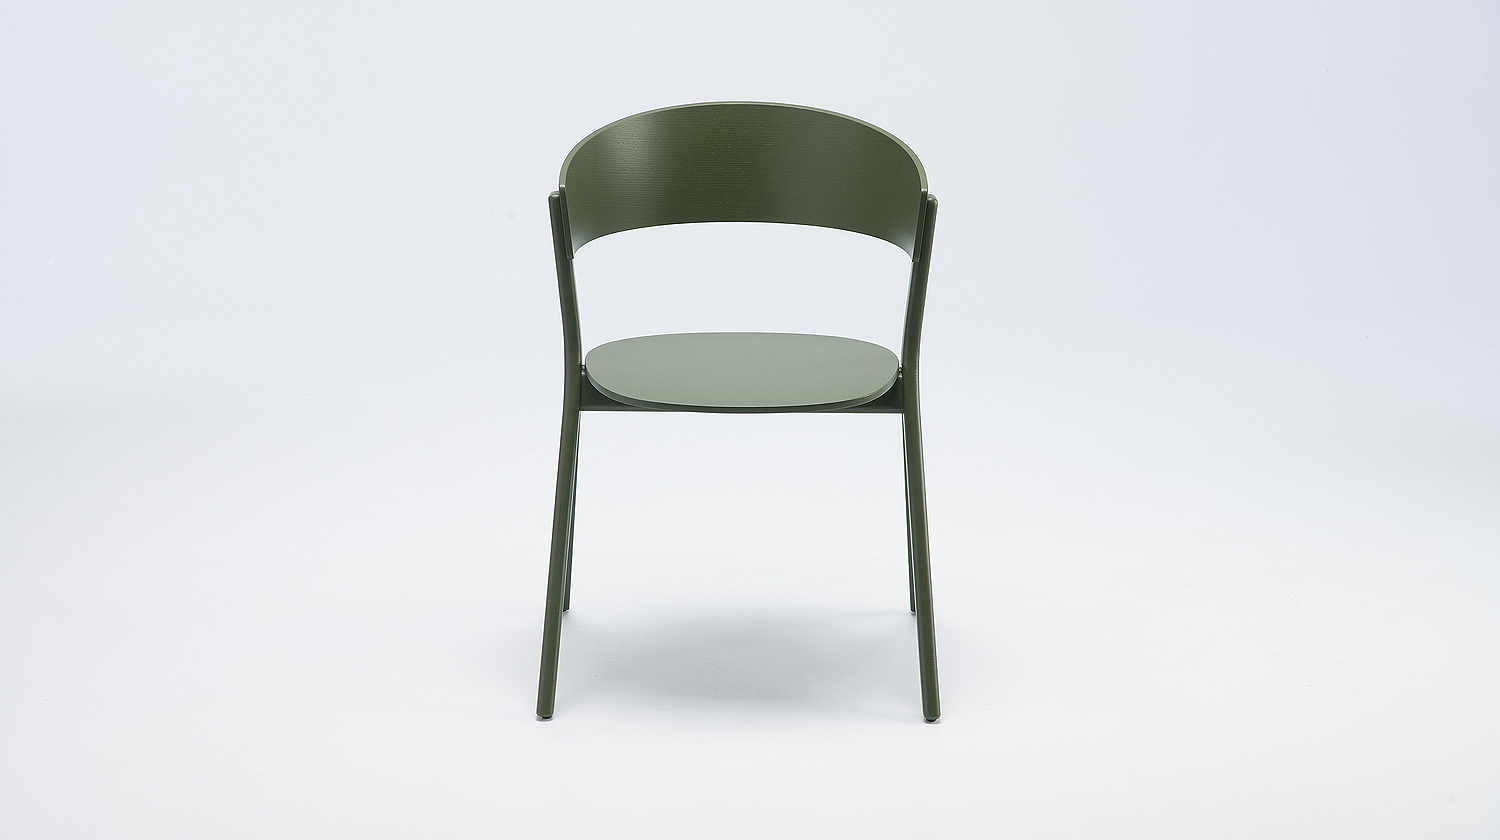 EDITS Circus wood chair in Olive Green